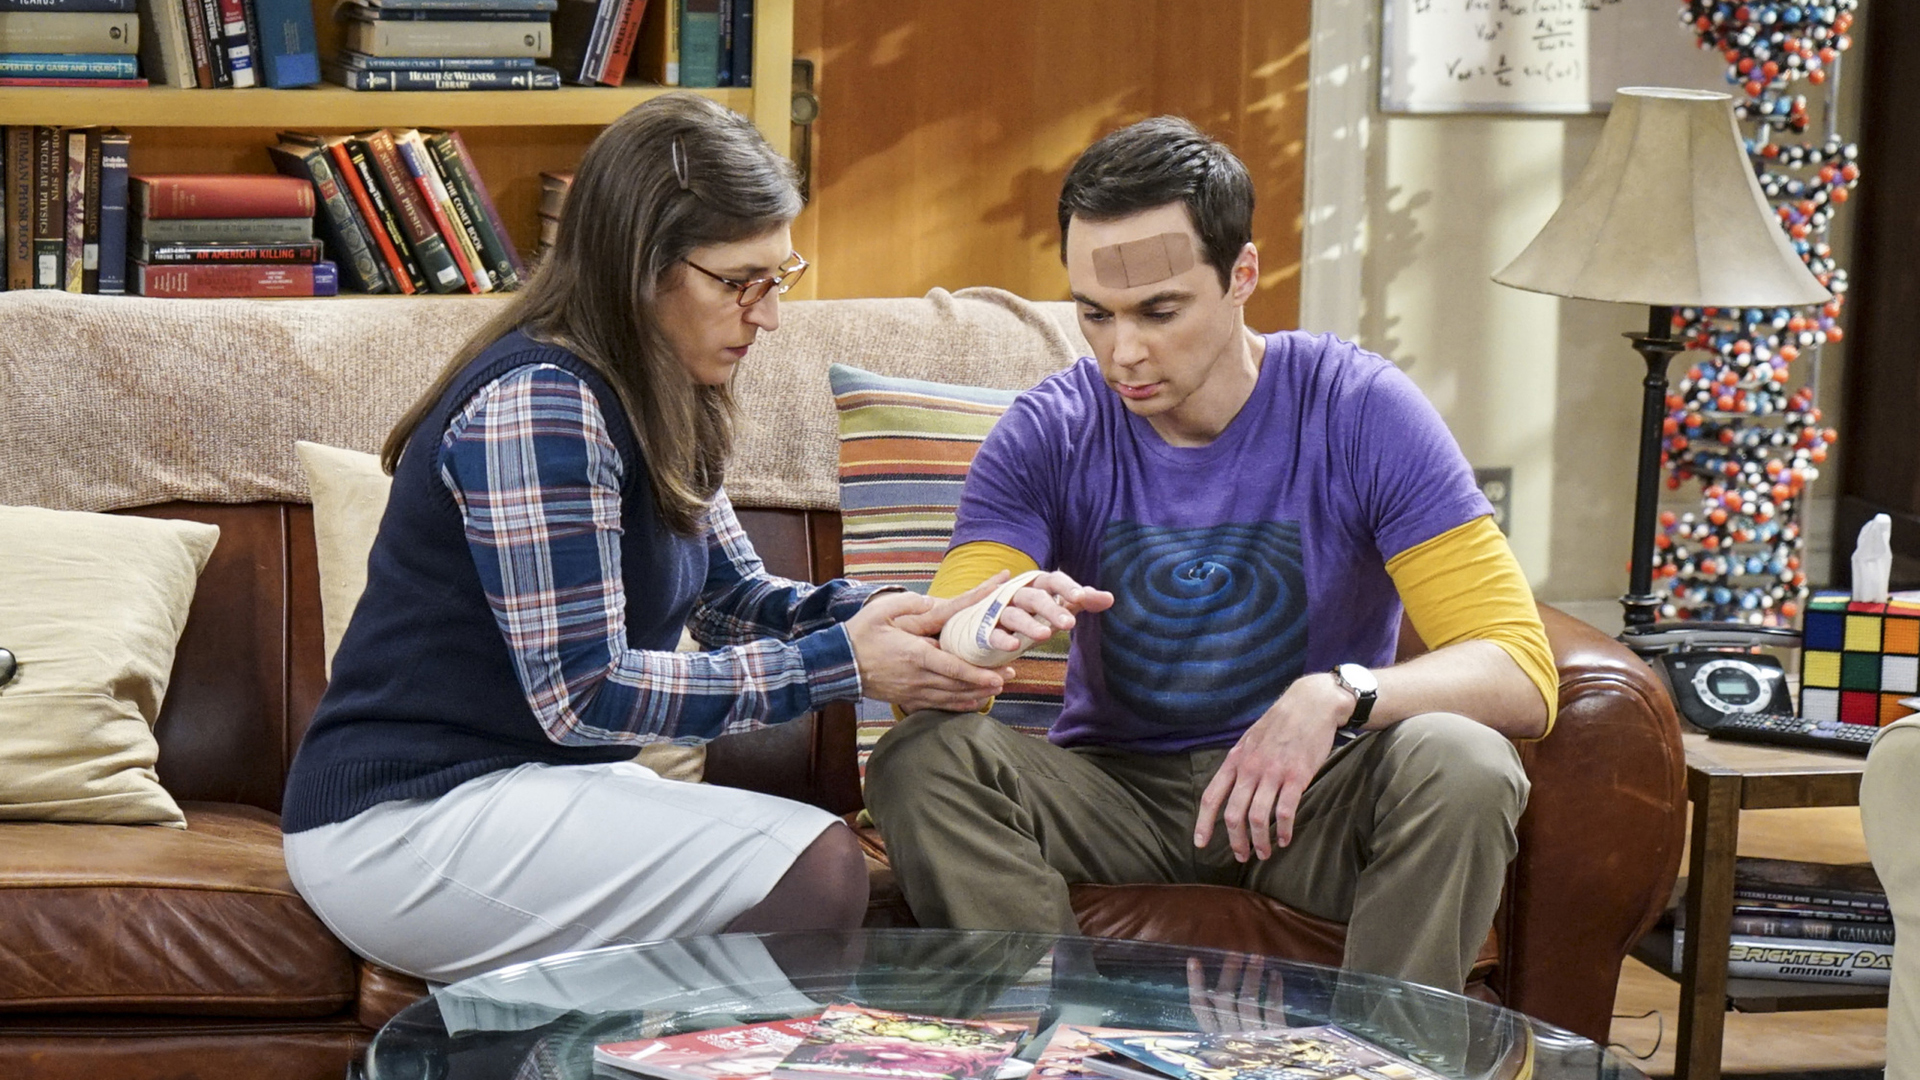 Amy tends to Sheldon's various wounds.